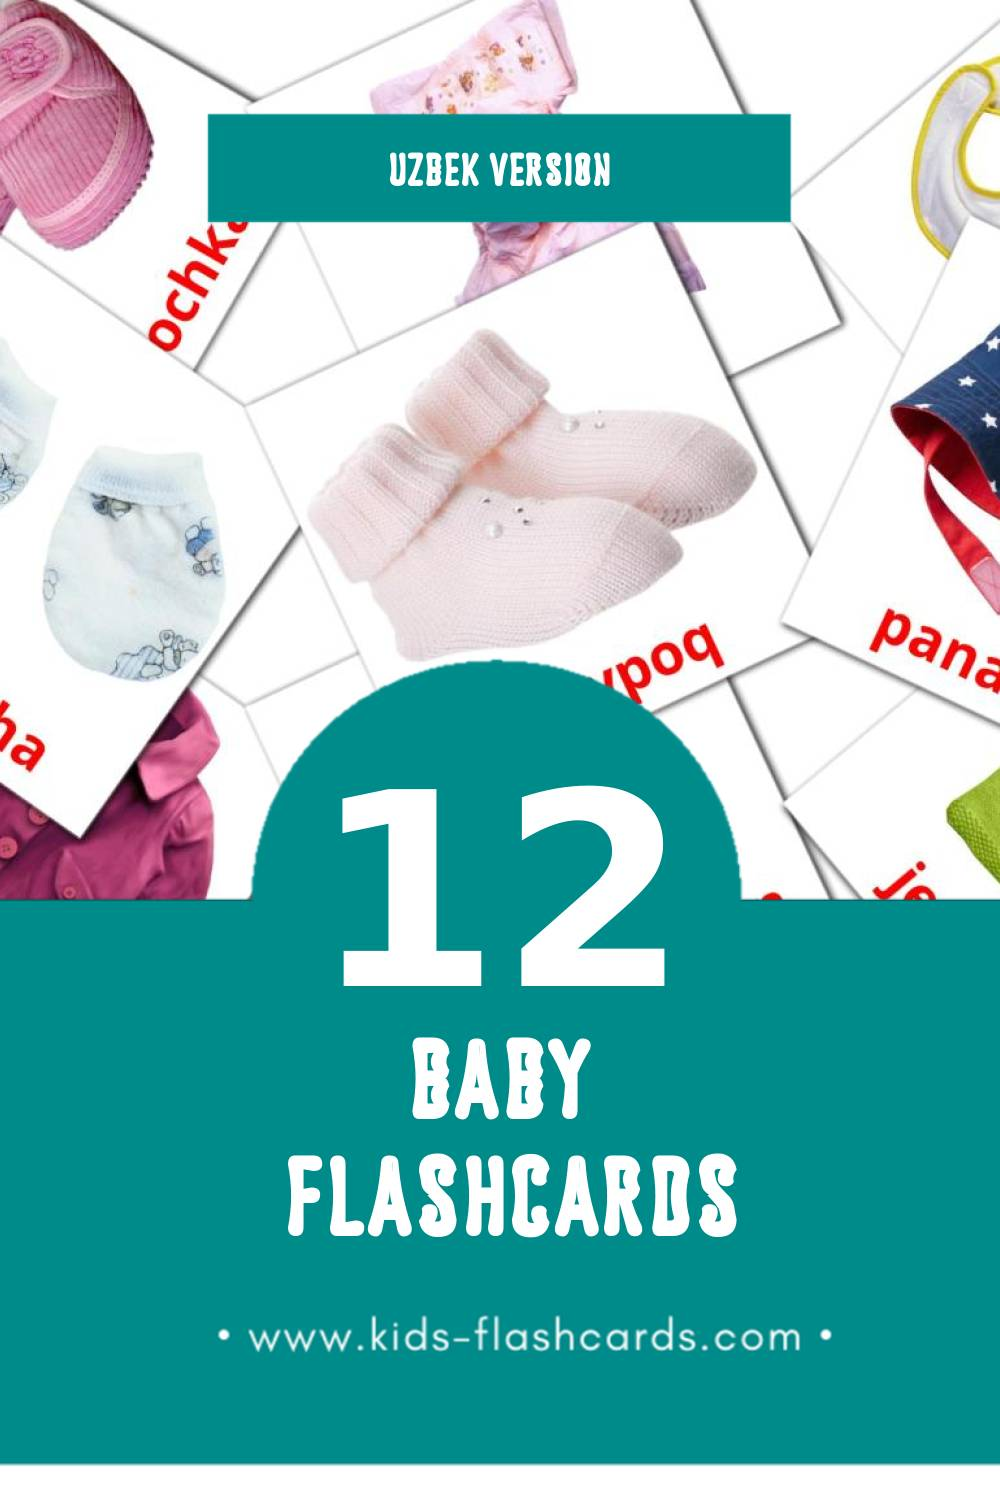 Visual Bola Flashcards for Toddlers (12 cards in Uzbek)